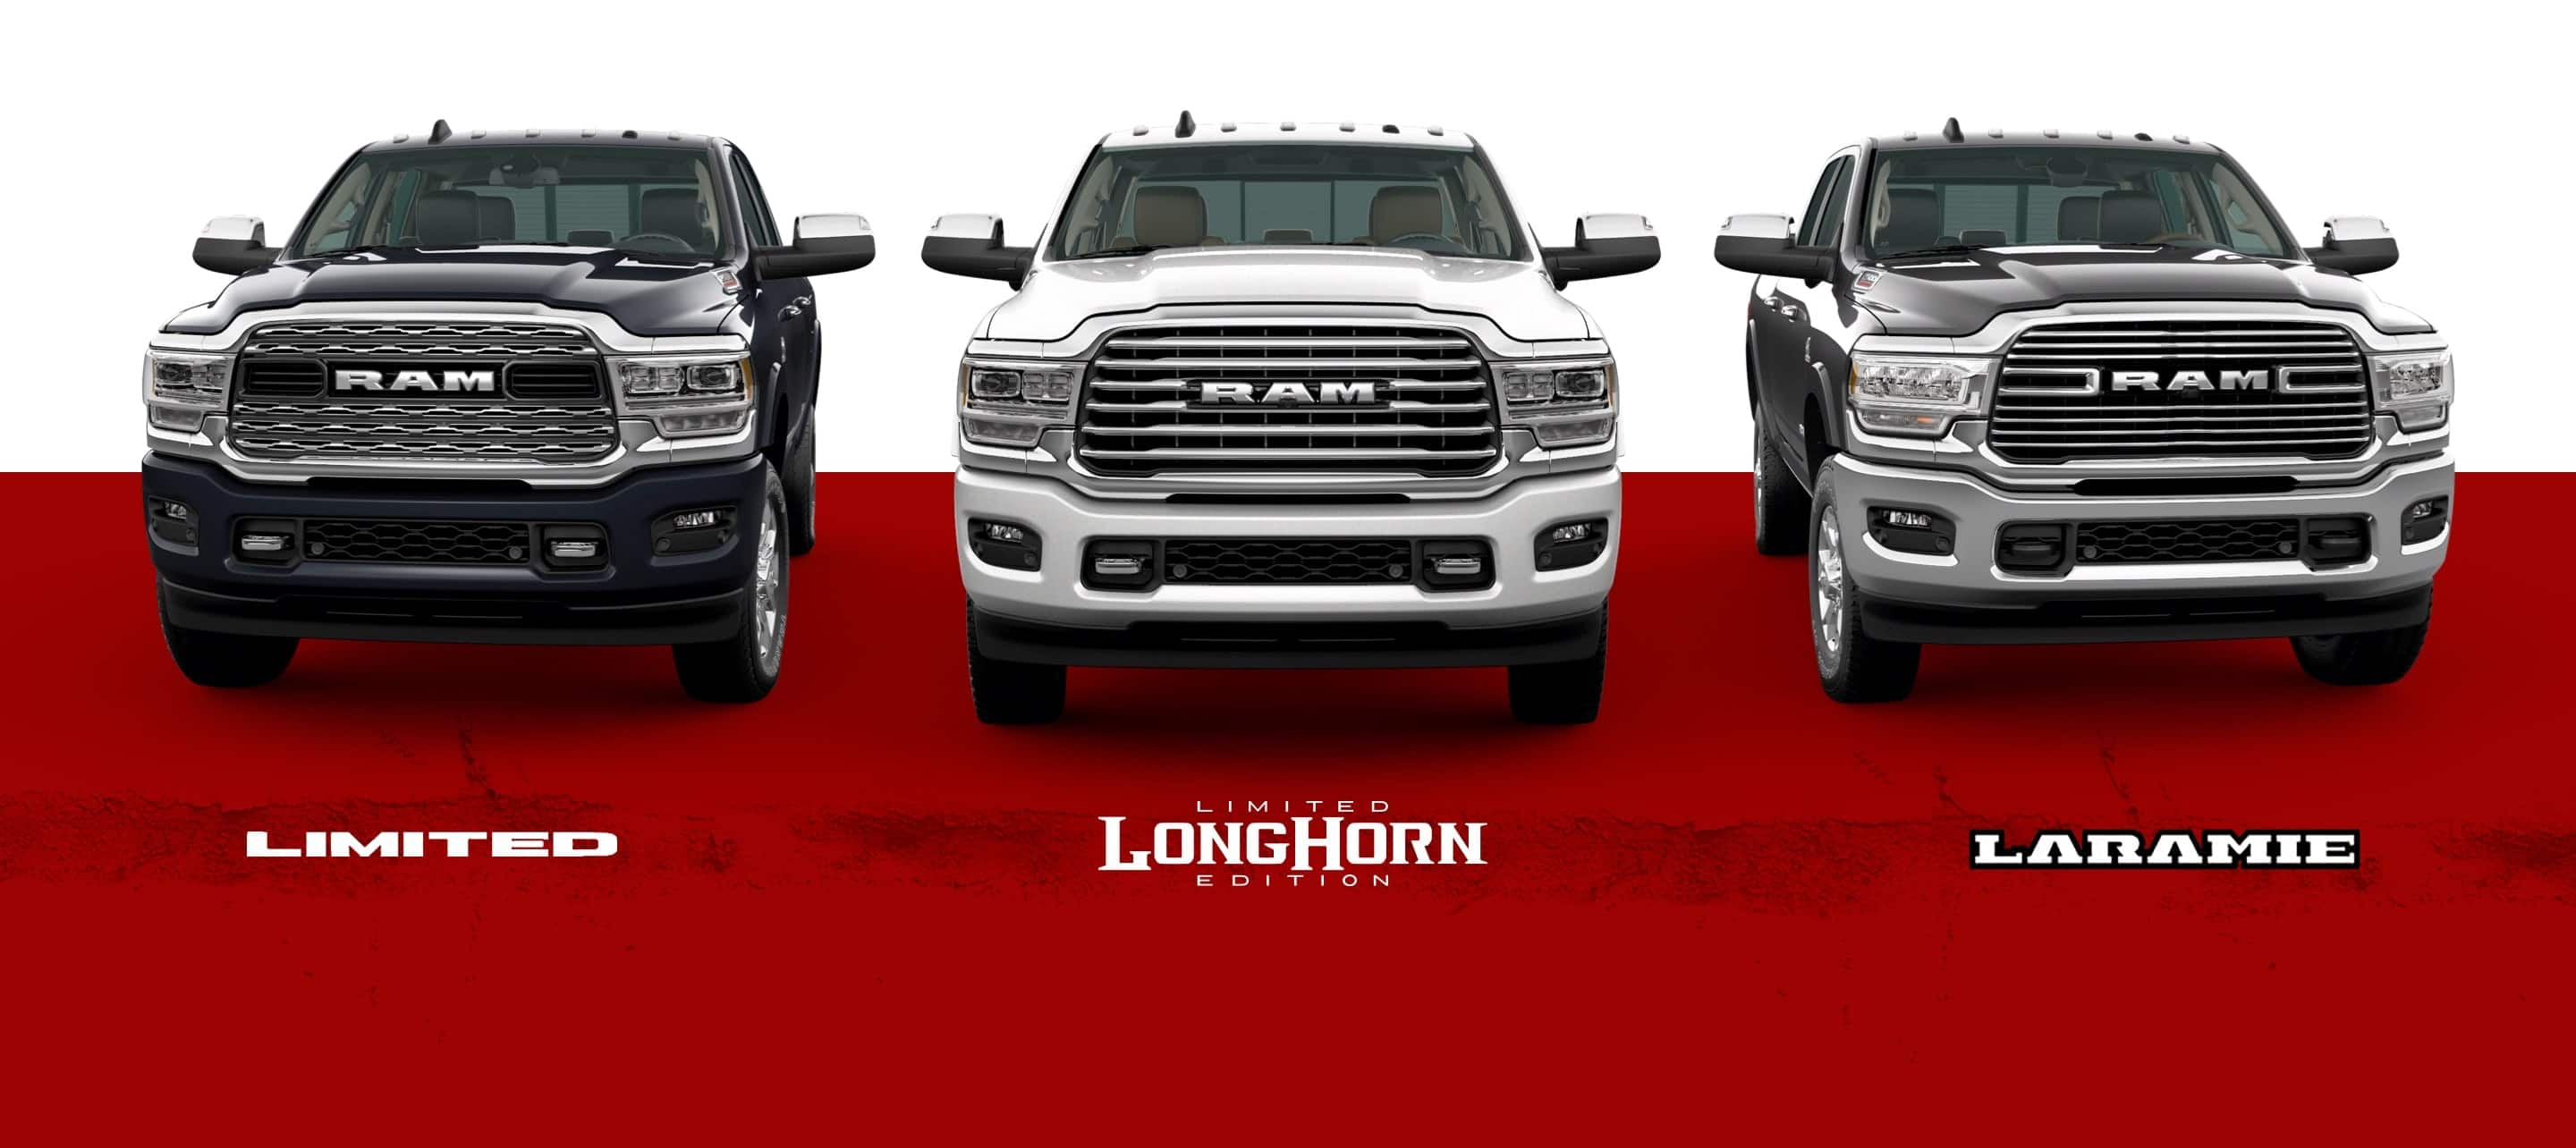 A slider showing three of the 2021 Ram 2500 trim levels: Limited, Limited Longhorn Edition, and Laramie.